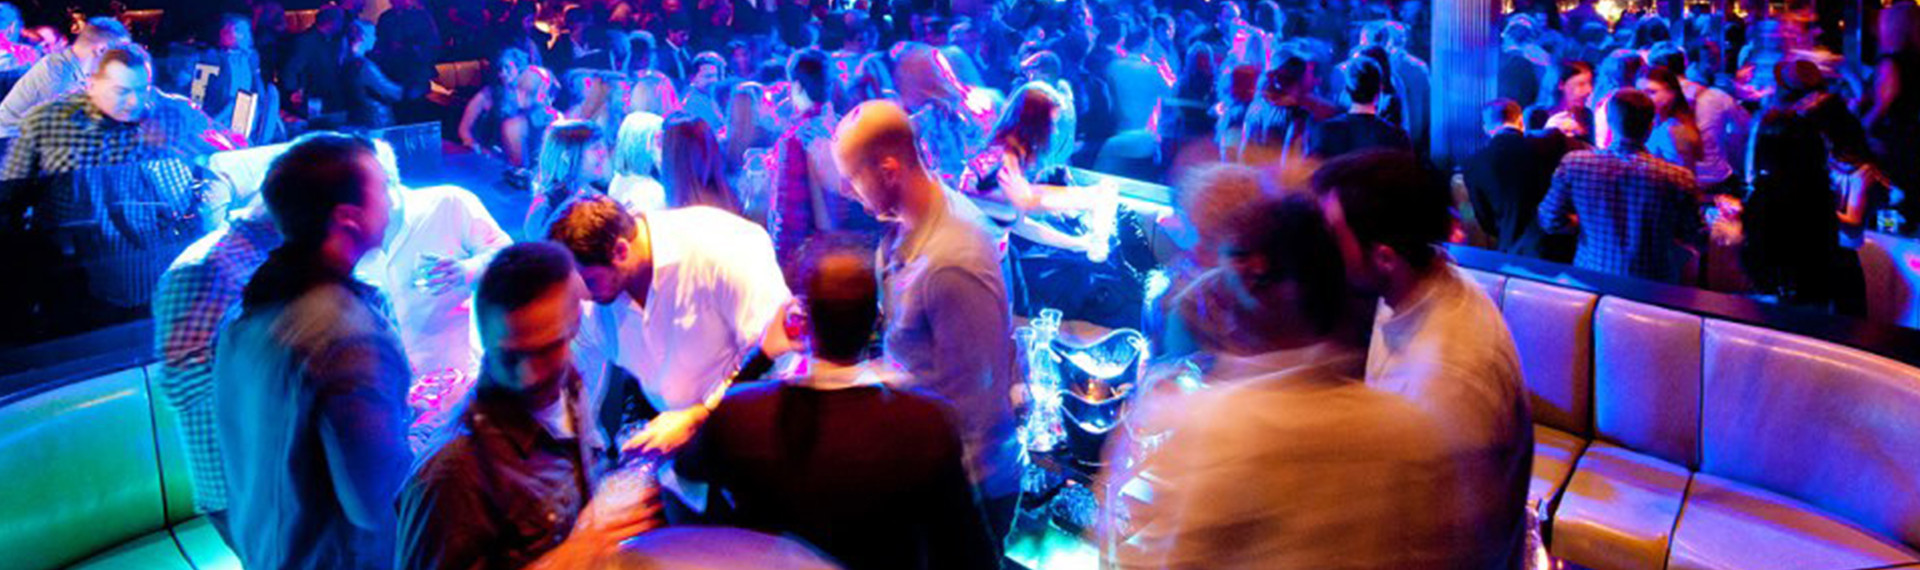 VIP Nightclub - Table & Drinks in Copenhagen for Stags | Pissup